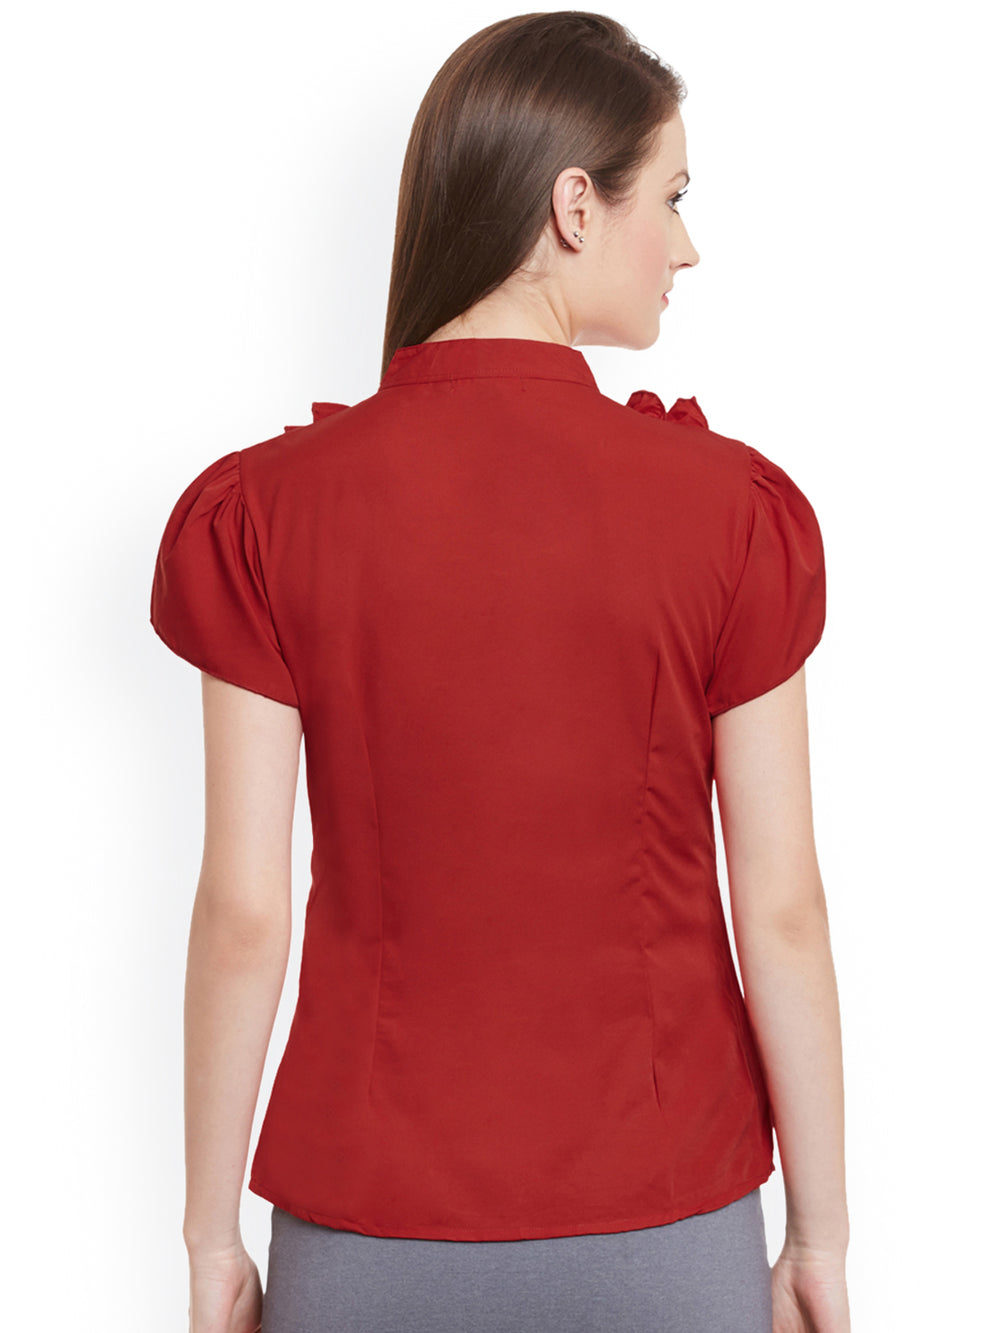 eyelet Women Red Solid Casual Shirt